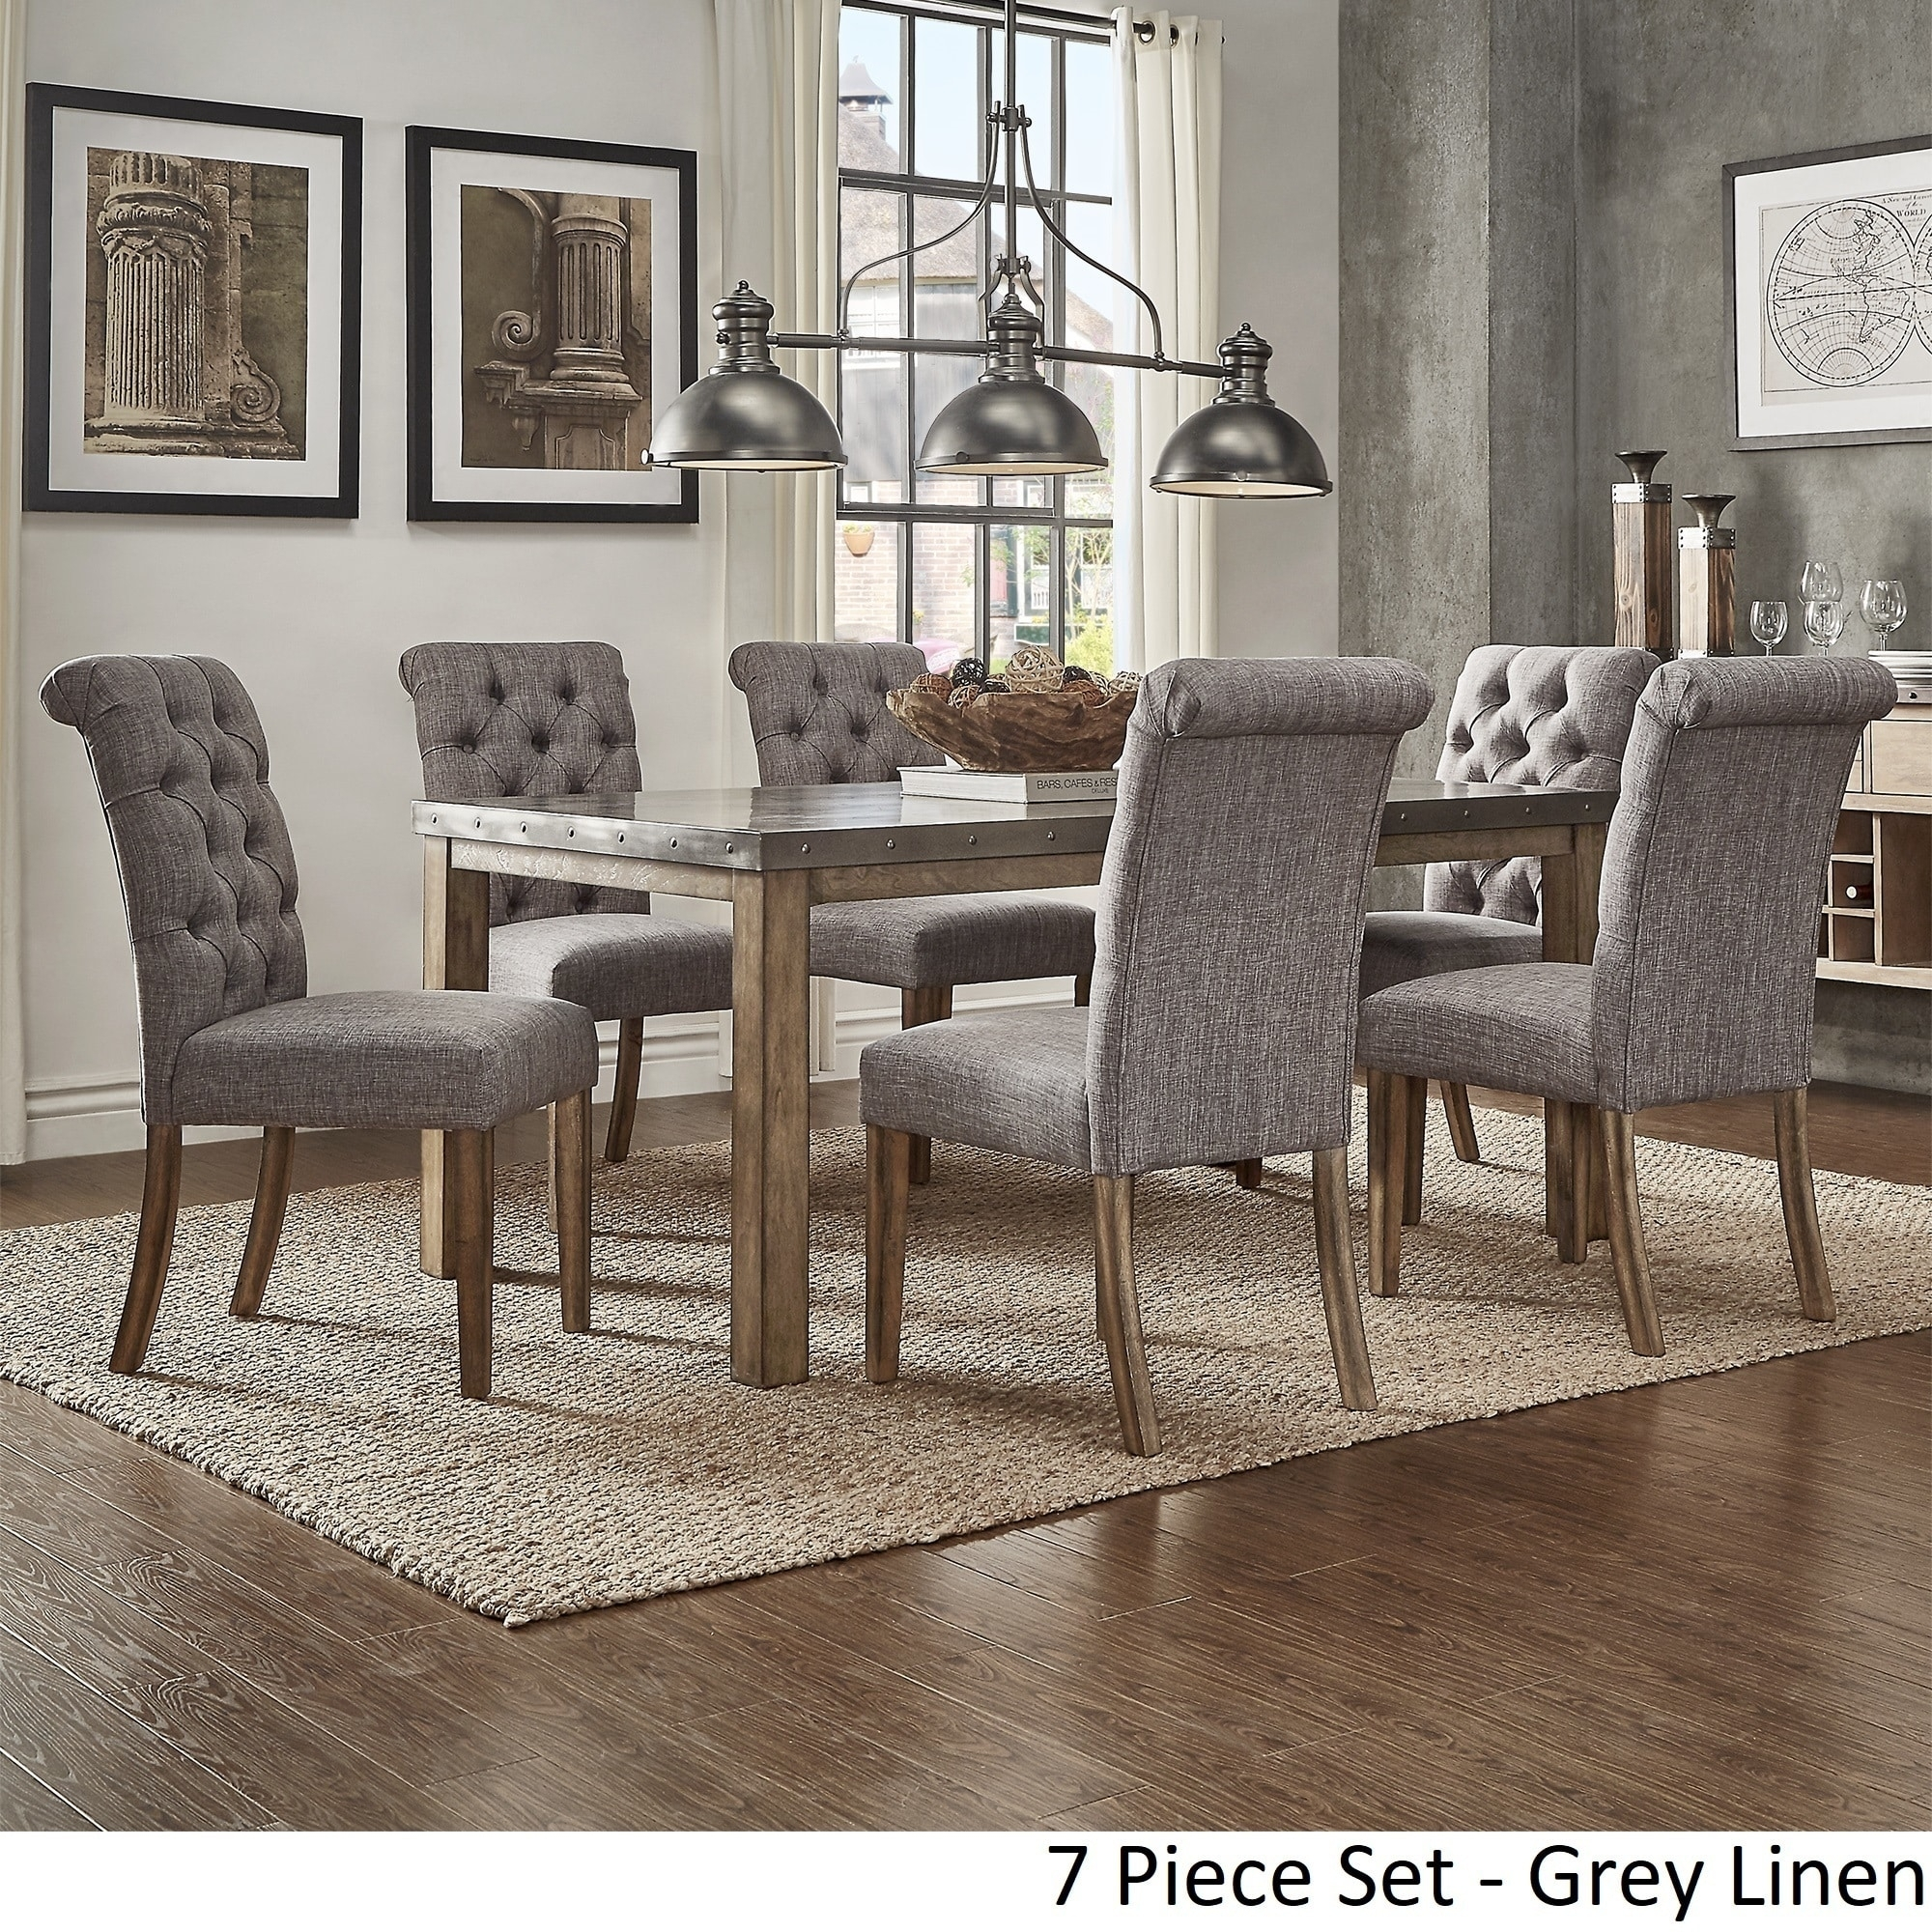 Cassidy Stainless Steel Top Rectangle Dining Table Setinspire Q Within Most Current Candice Ii 7 Piece Extension Rectangular Dining Sets With Slat Back Side Chairs (Photo 11 of 20)